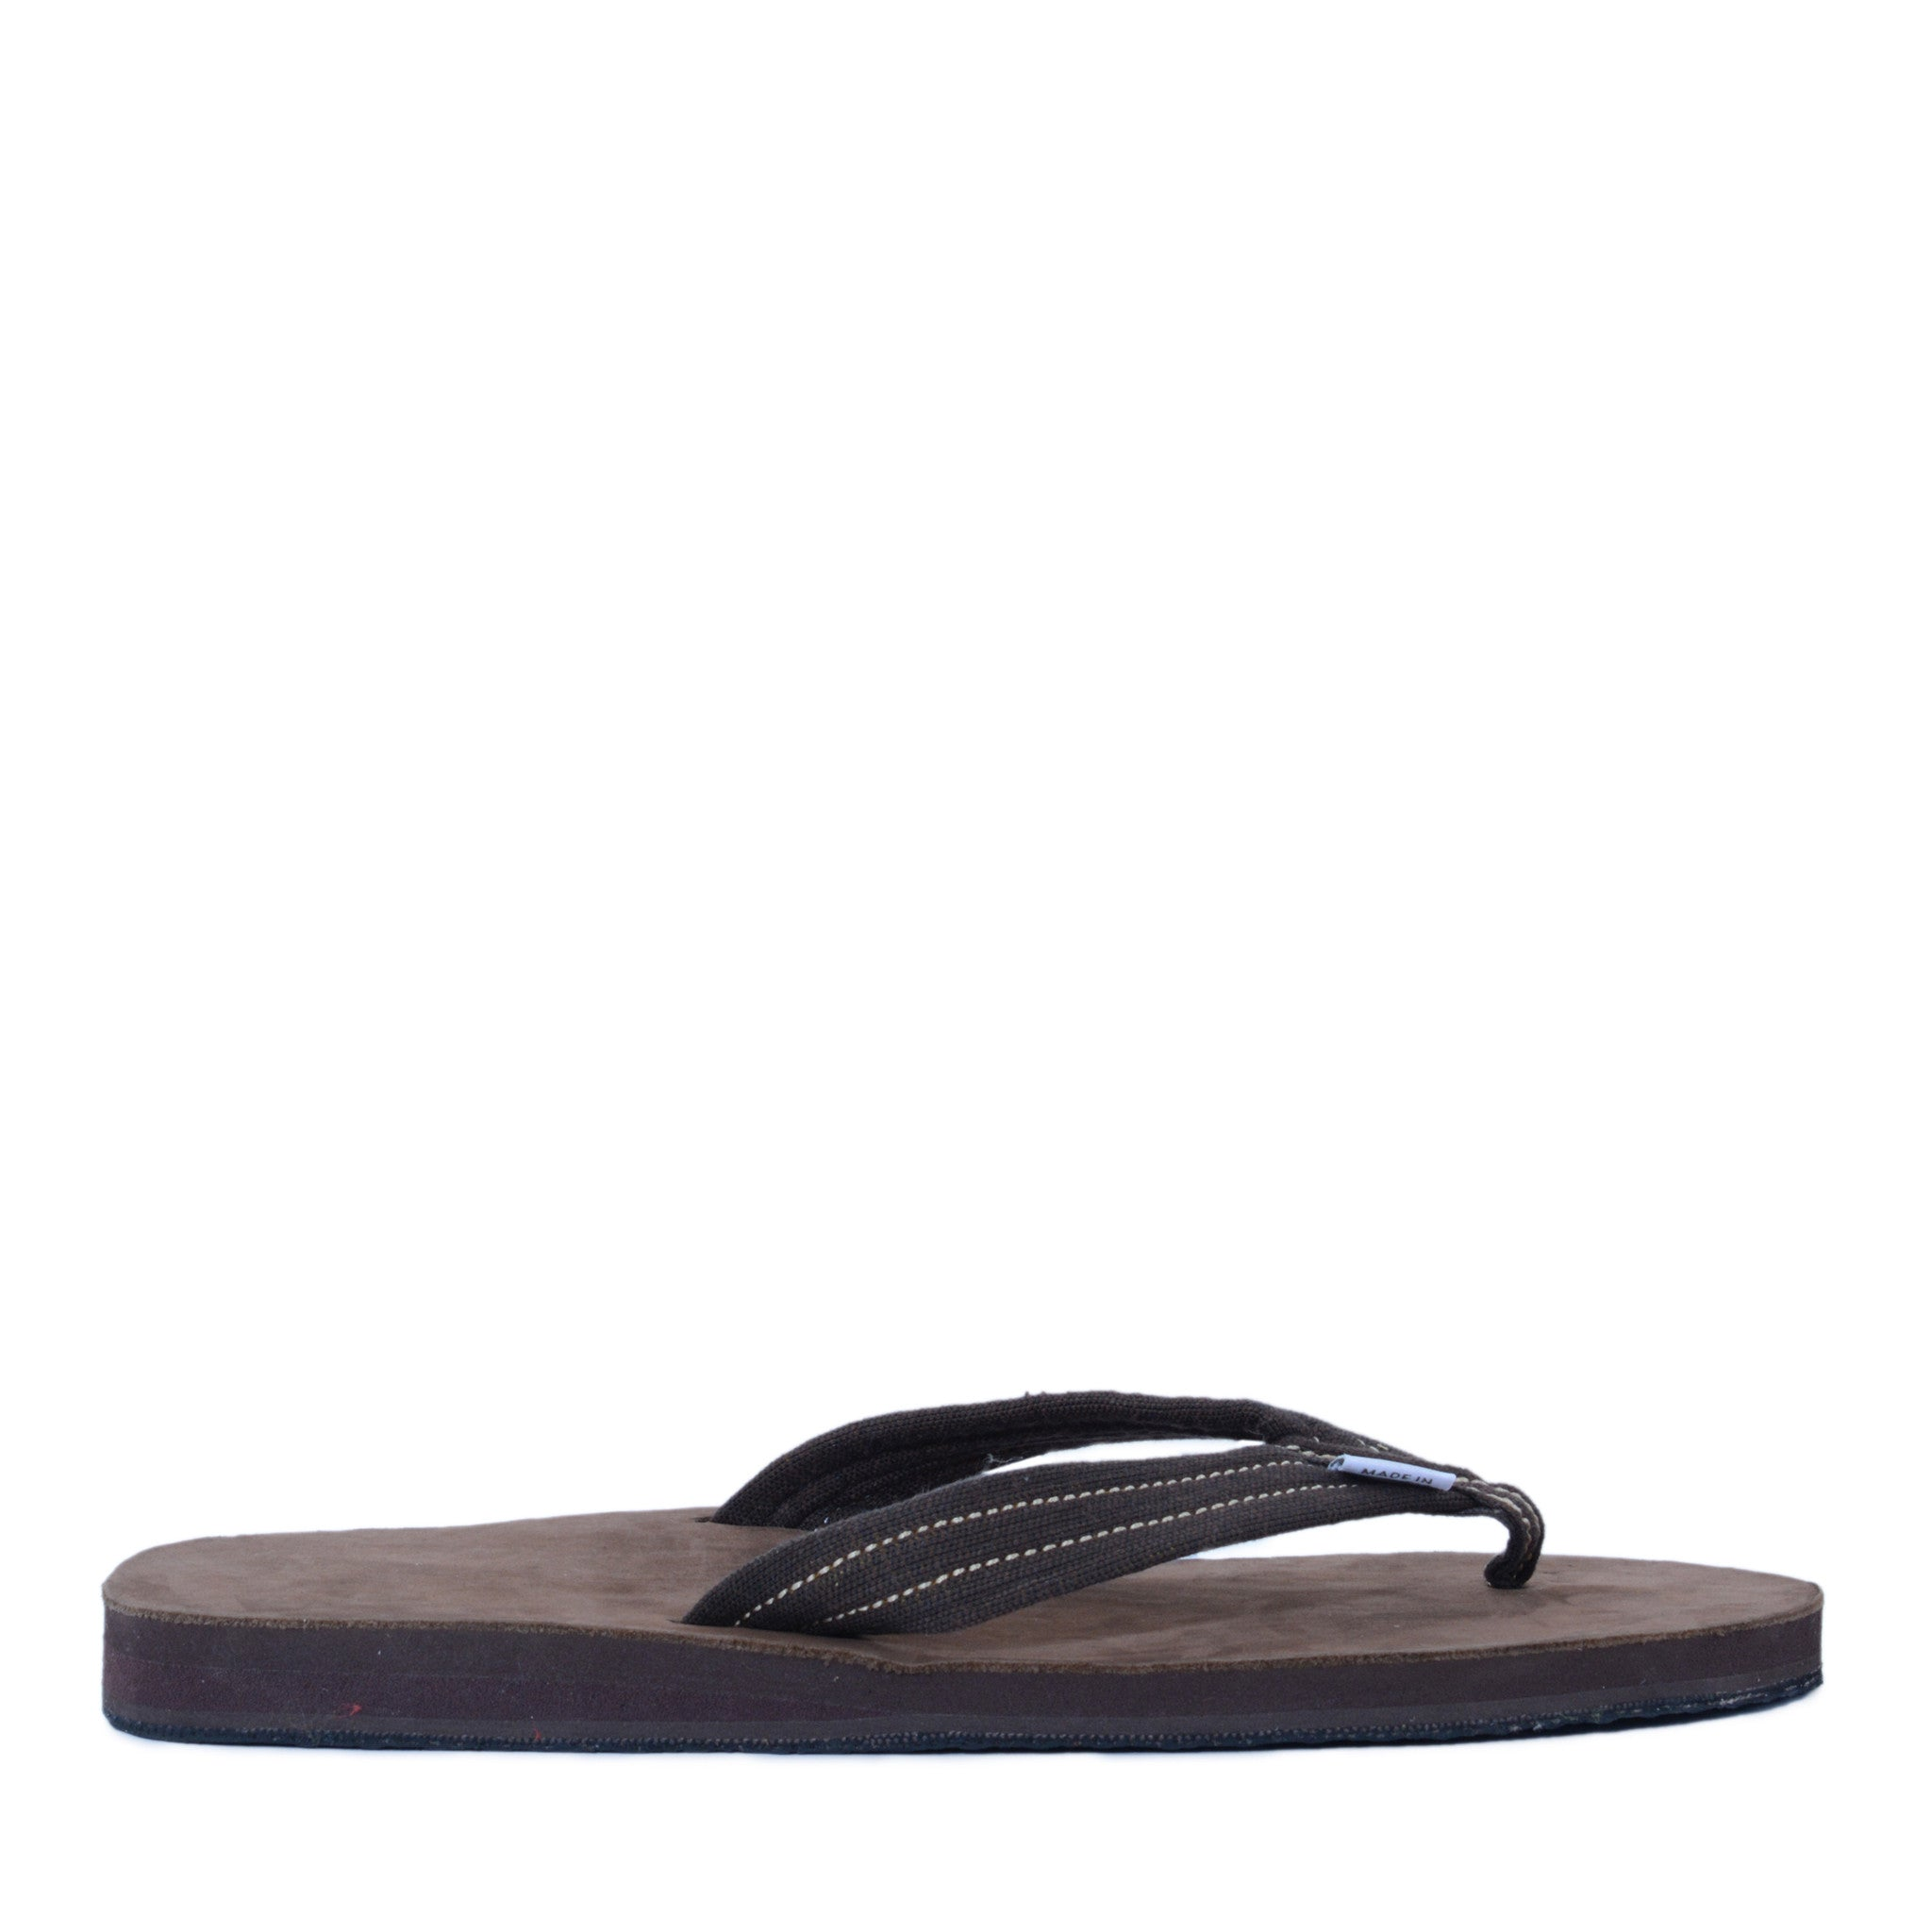 solerebels brown nuDEAL mSh 2 Sandals